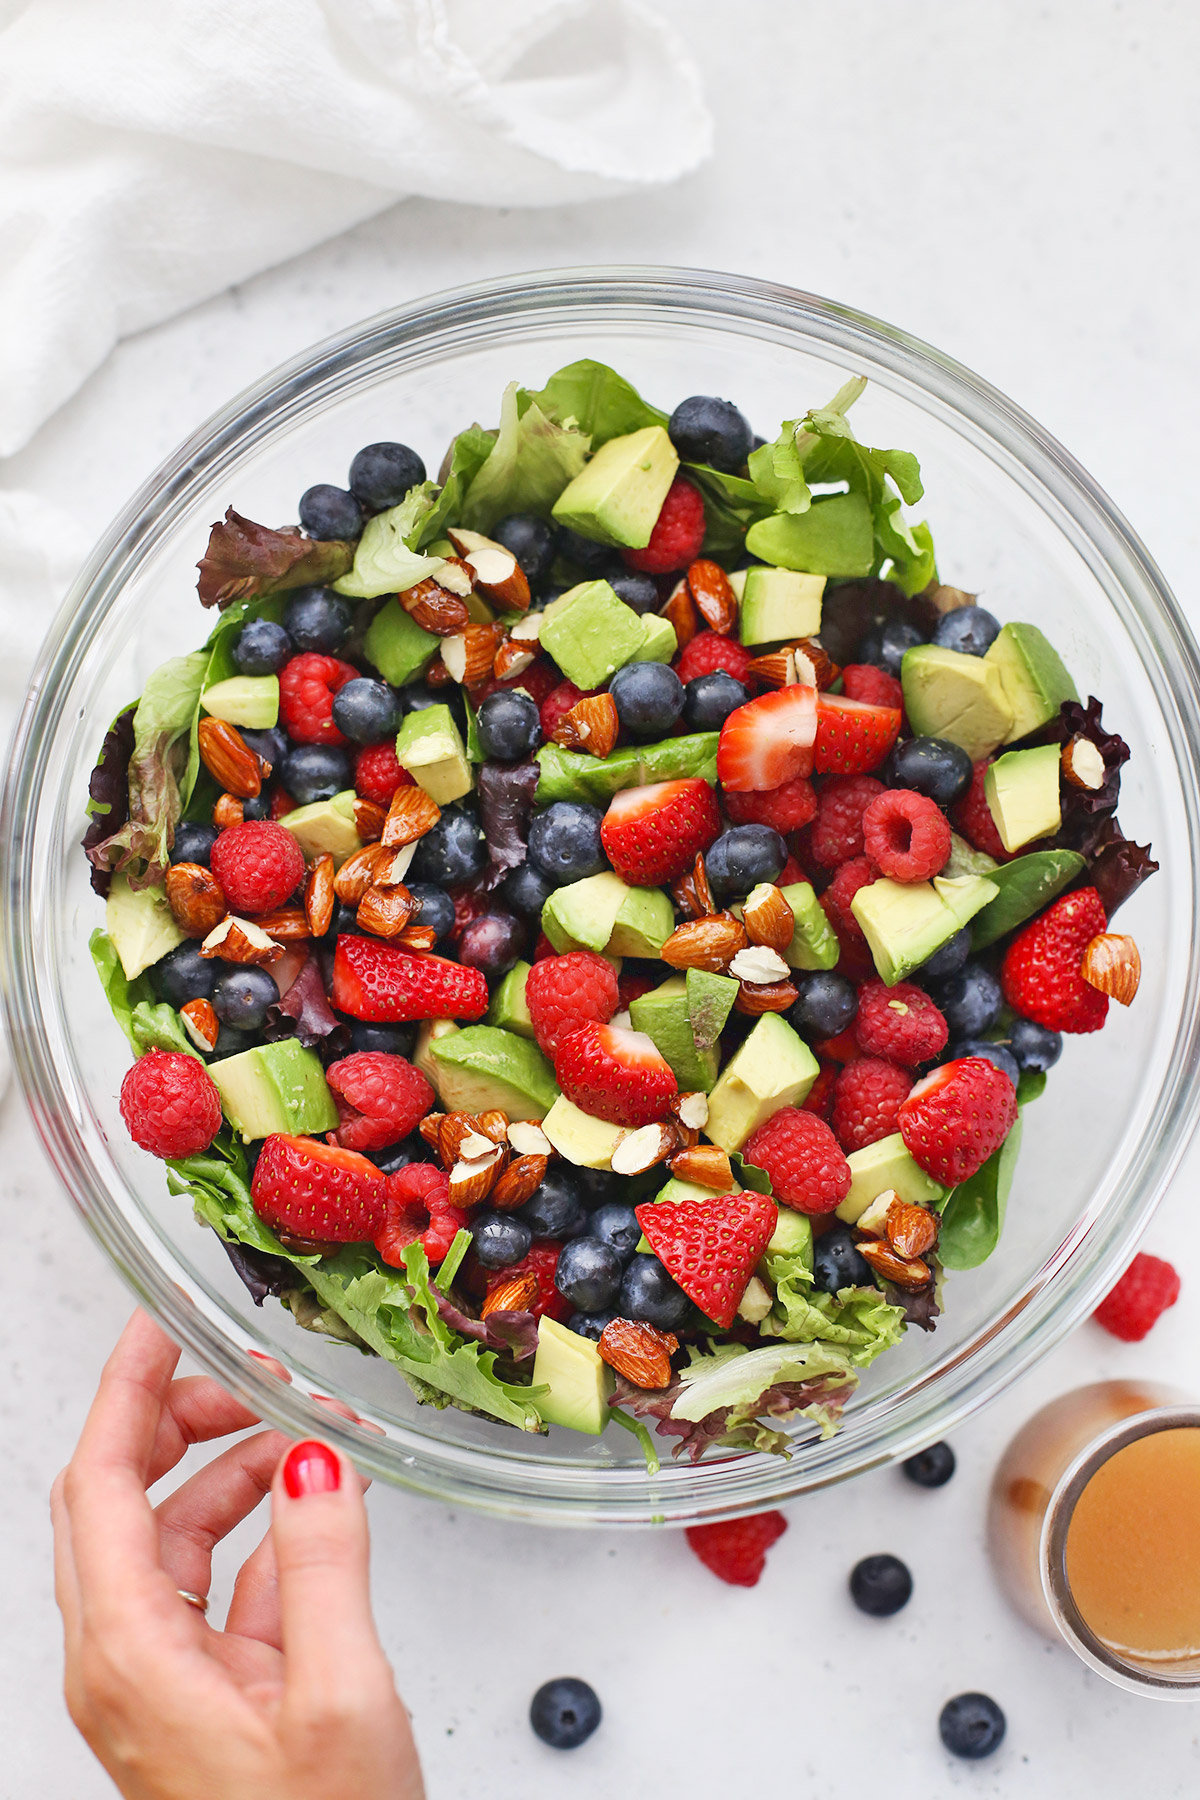 Mixed Berry Salad from One Lovely Life